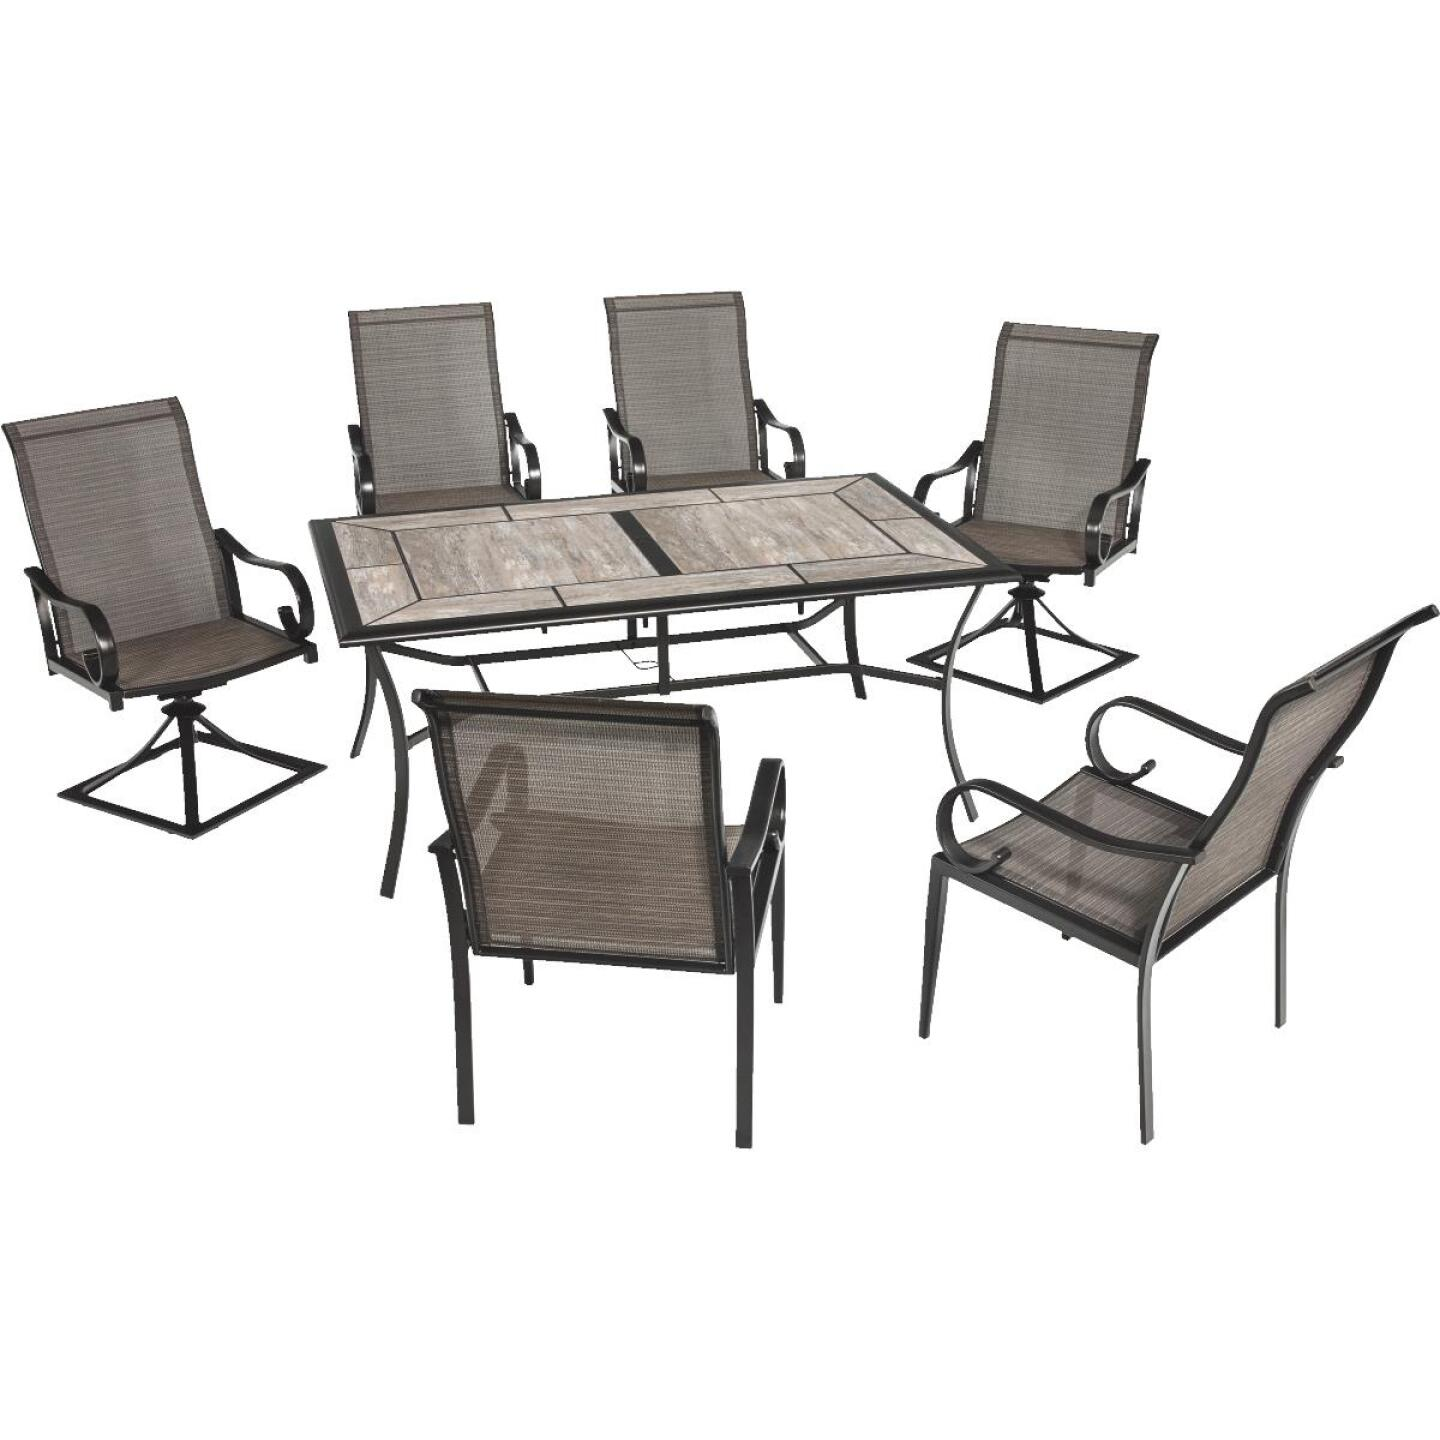 Outdoor Expressions Berkshire 7-Piece Dining Set Image 280